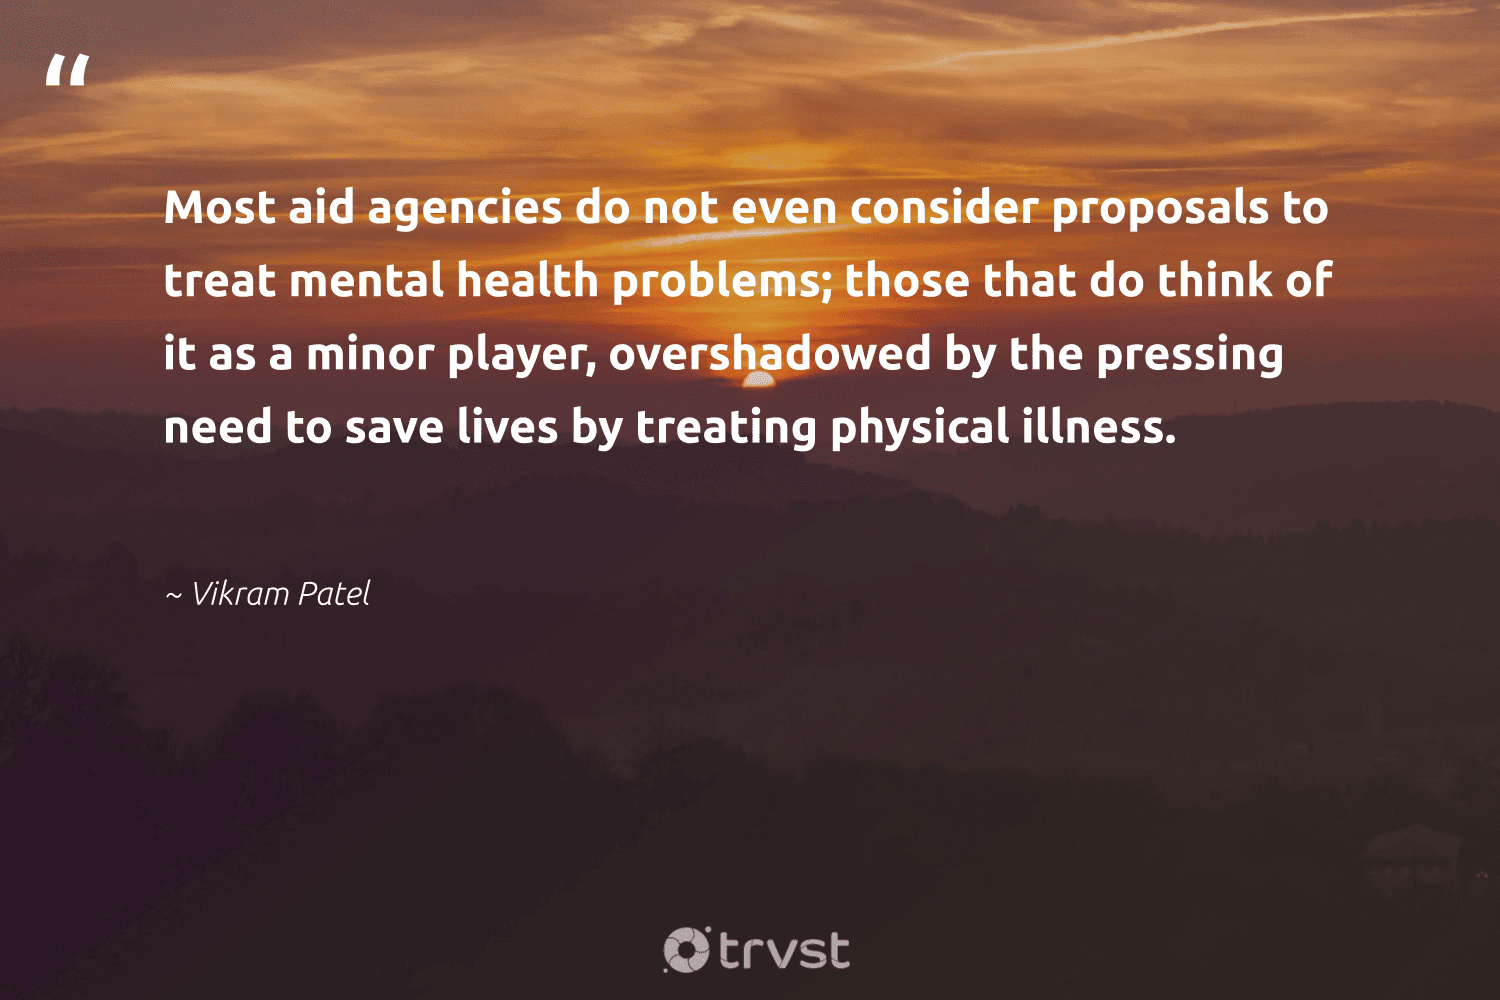 """""""Most aid agencies do not even consider proposals to treat mental health problems; those that do think of it as a minor player, overshadowed by the pressing need to save lives by treating physical illness.""""  - Vikram Patel #trvst #quotes #mentalhealth #health #mentalhealthawareness #mindset #begreat #dotherightthing #depression #togetherwecan #nevergiveup #dogood"""